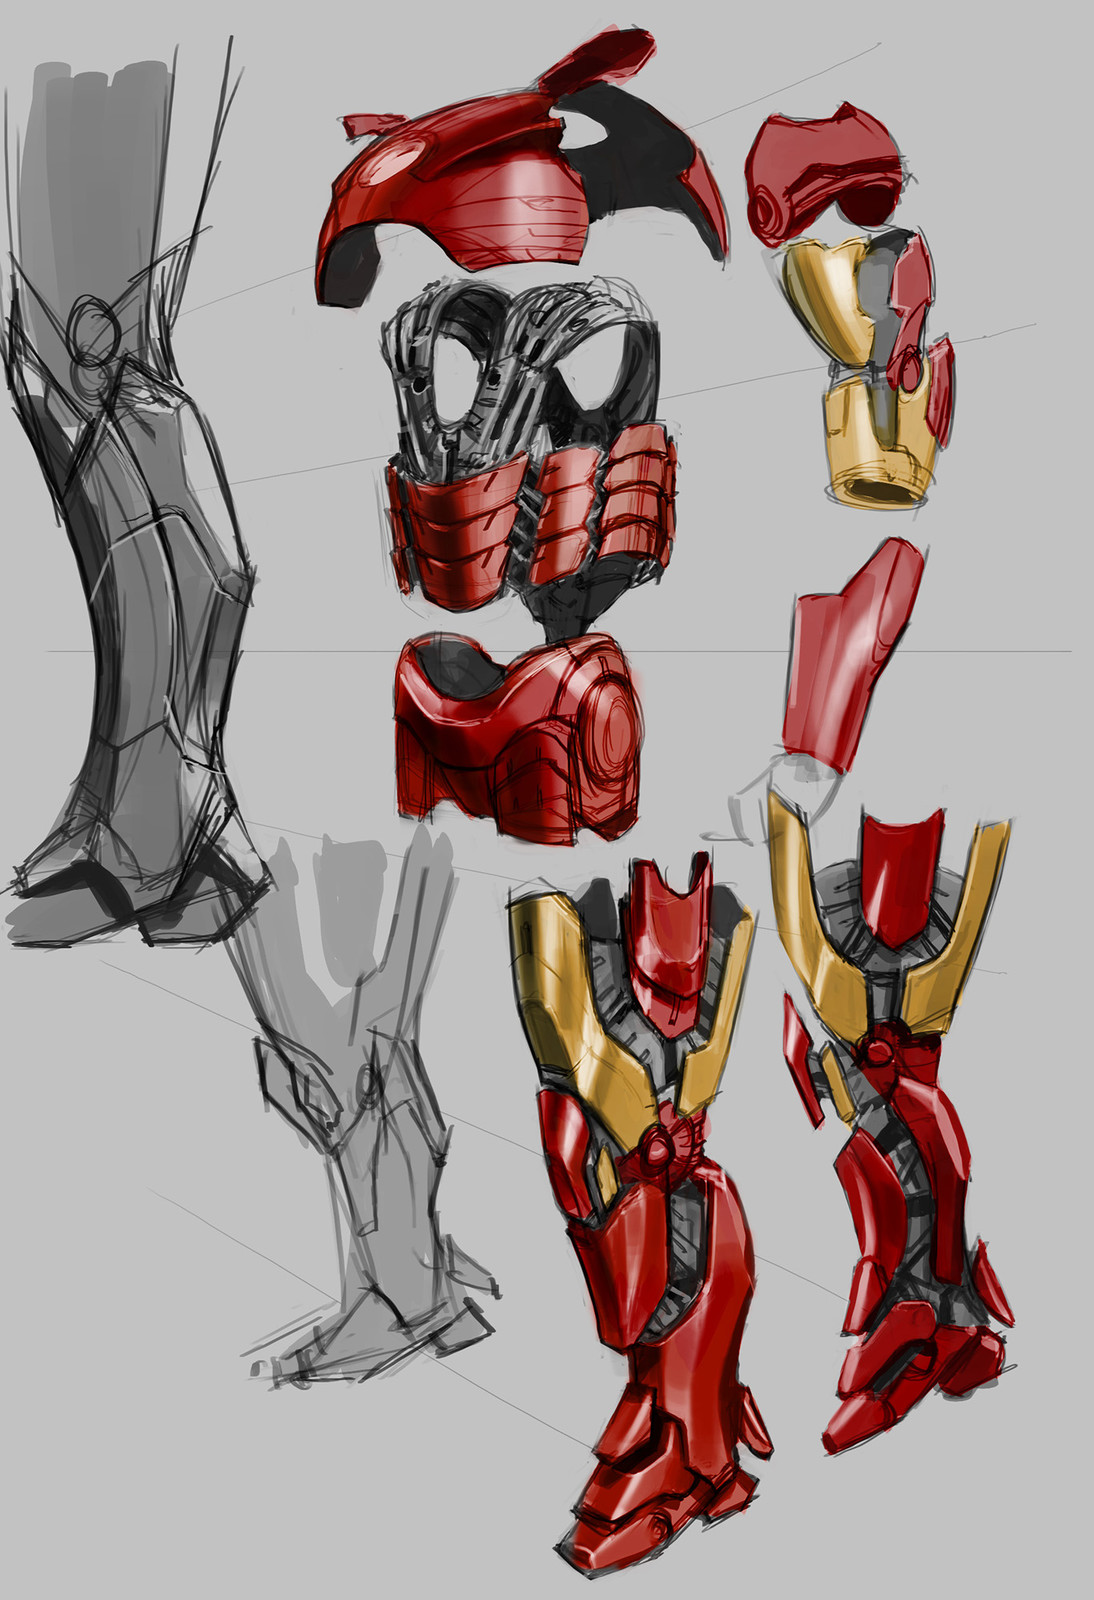 A rough sketch of how the suit would be broken down into its major components.